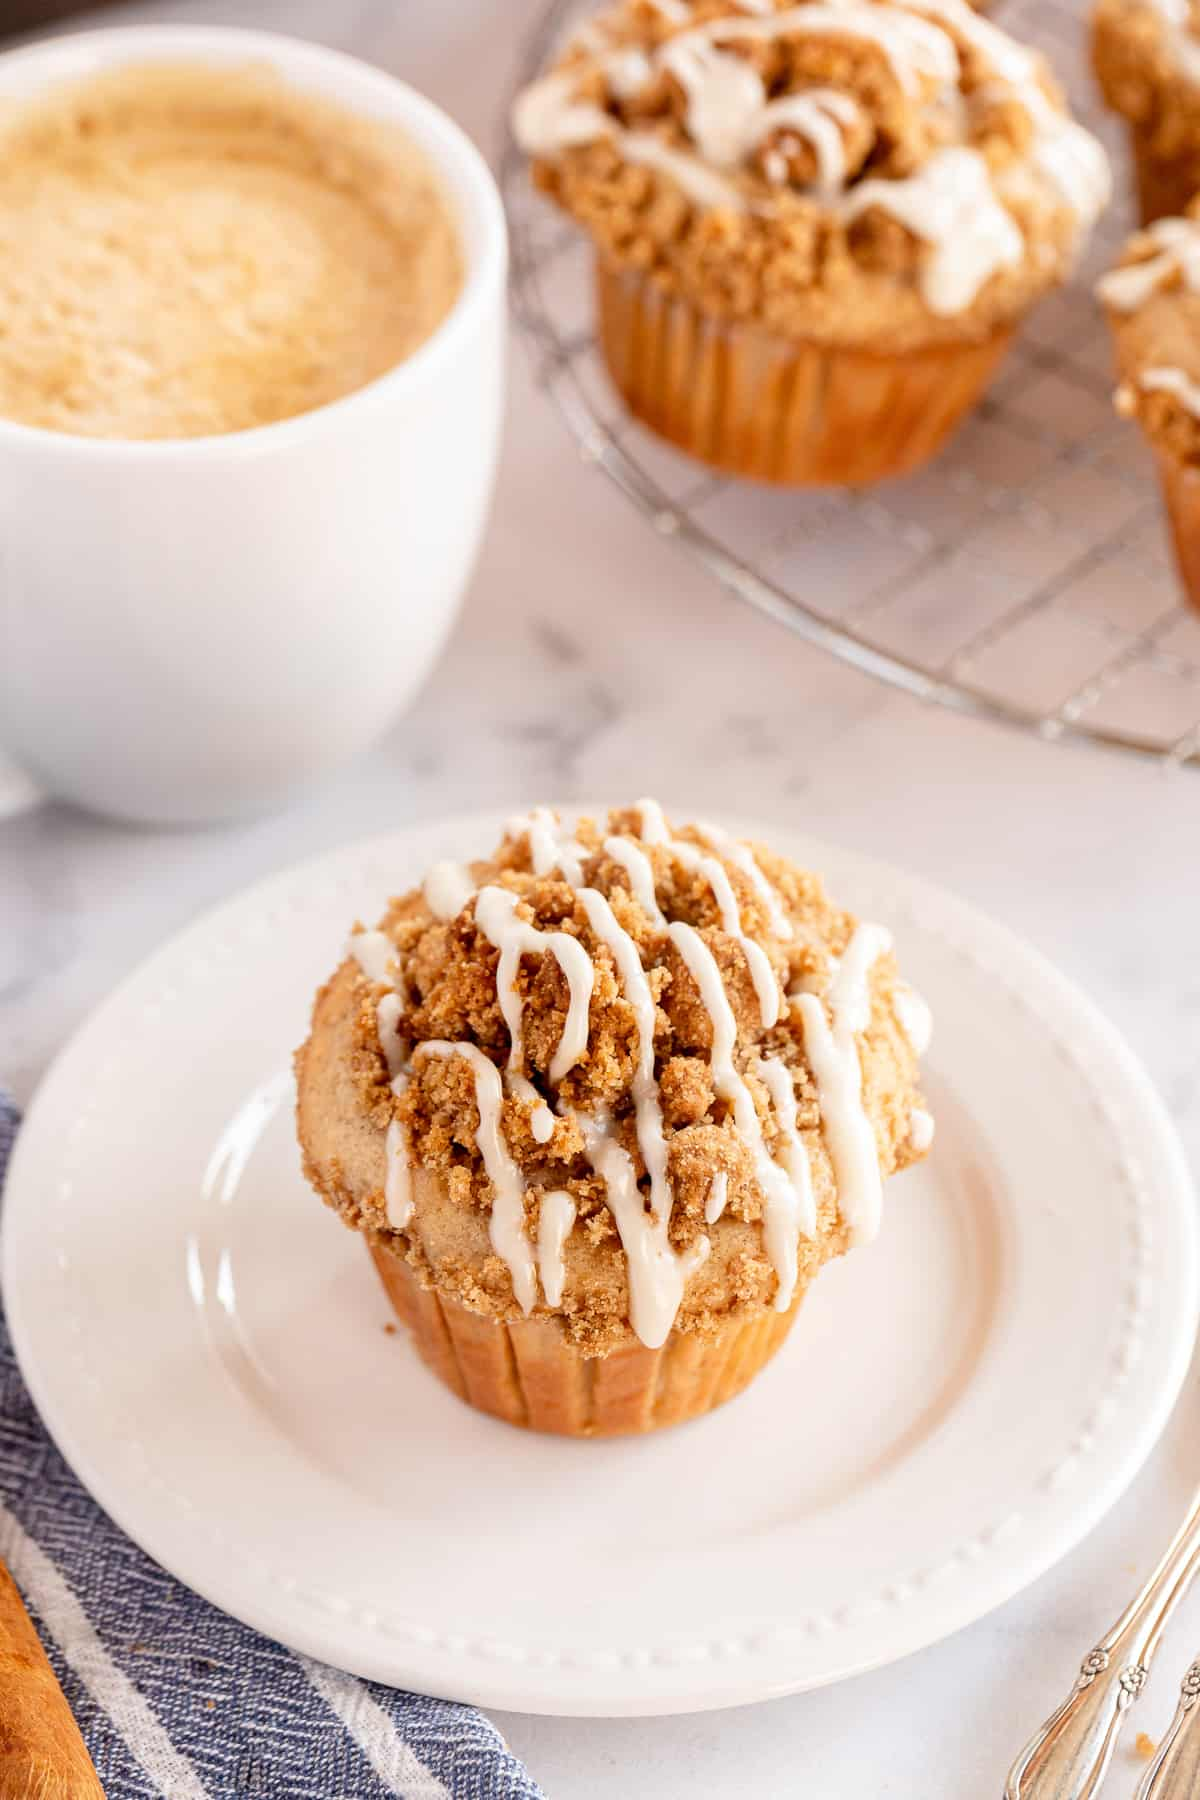 A glazed apple muffin on a white plate next to a cup of coffee.